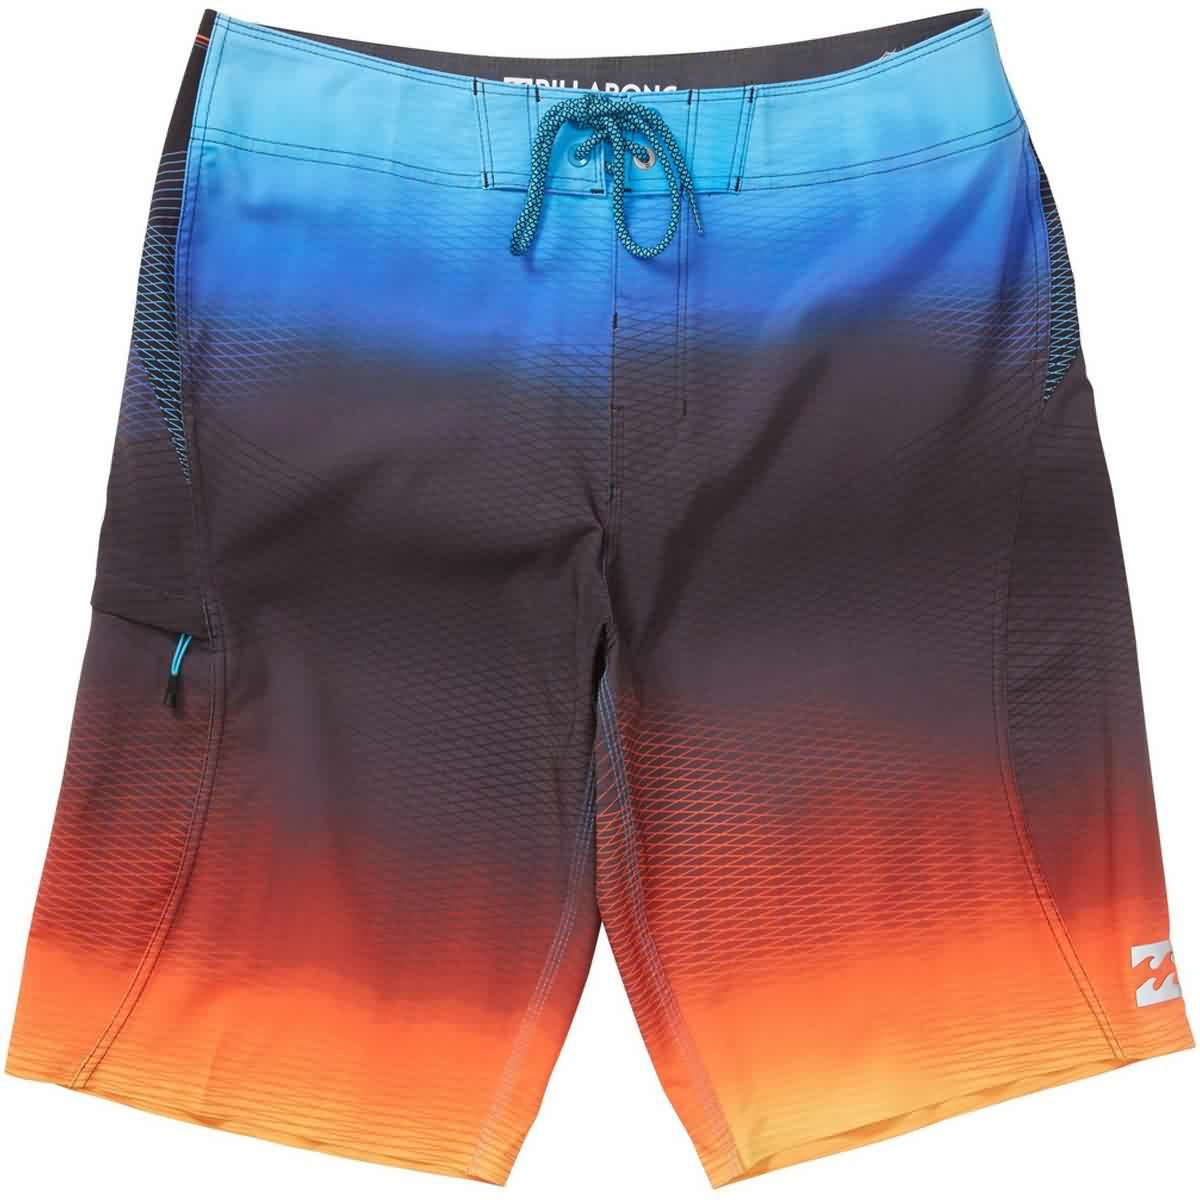 Billabong Fluid X Men's Boardshort Shorts